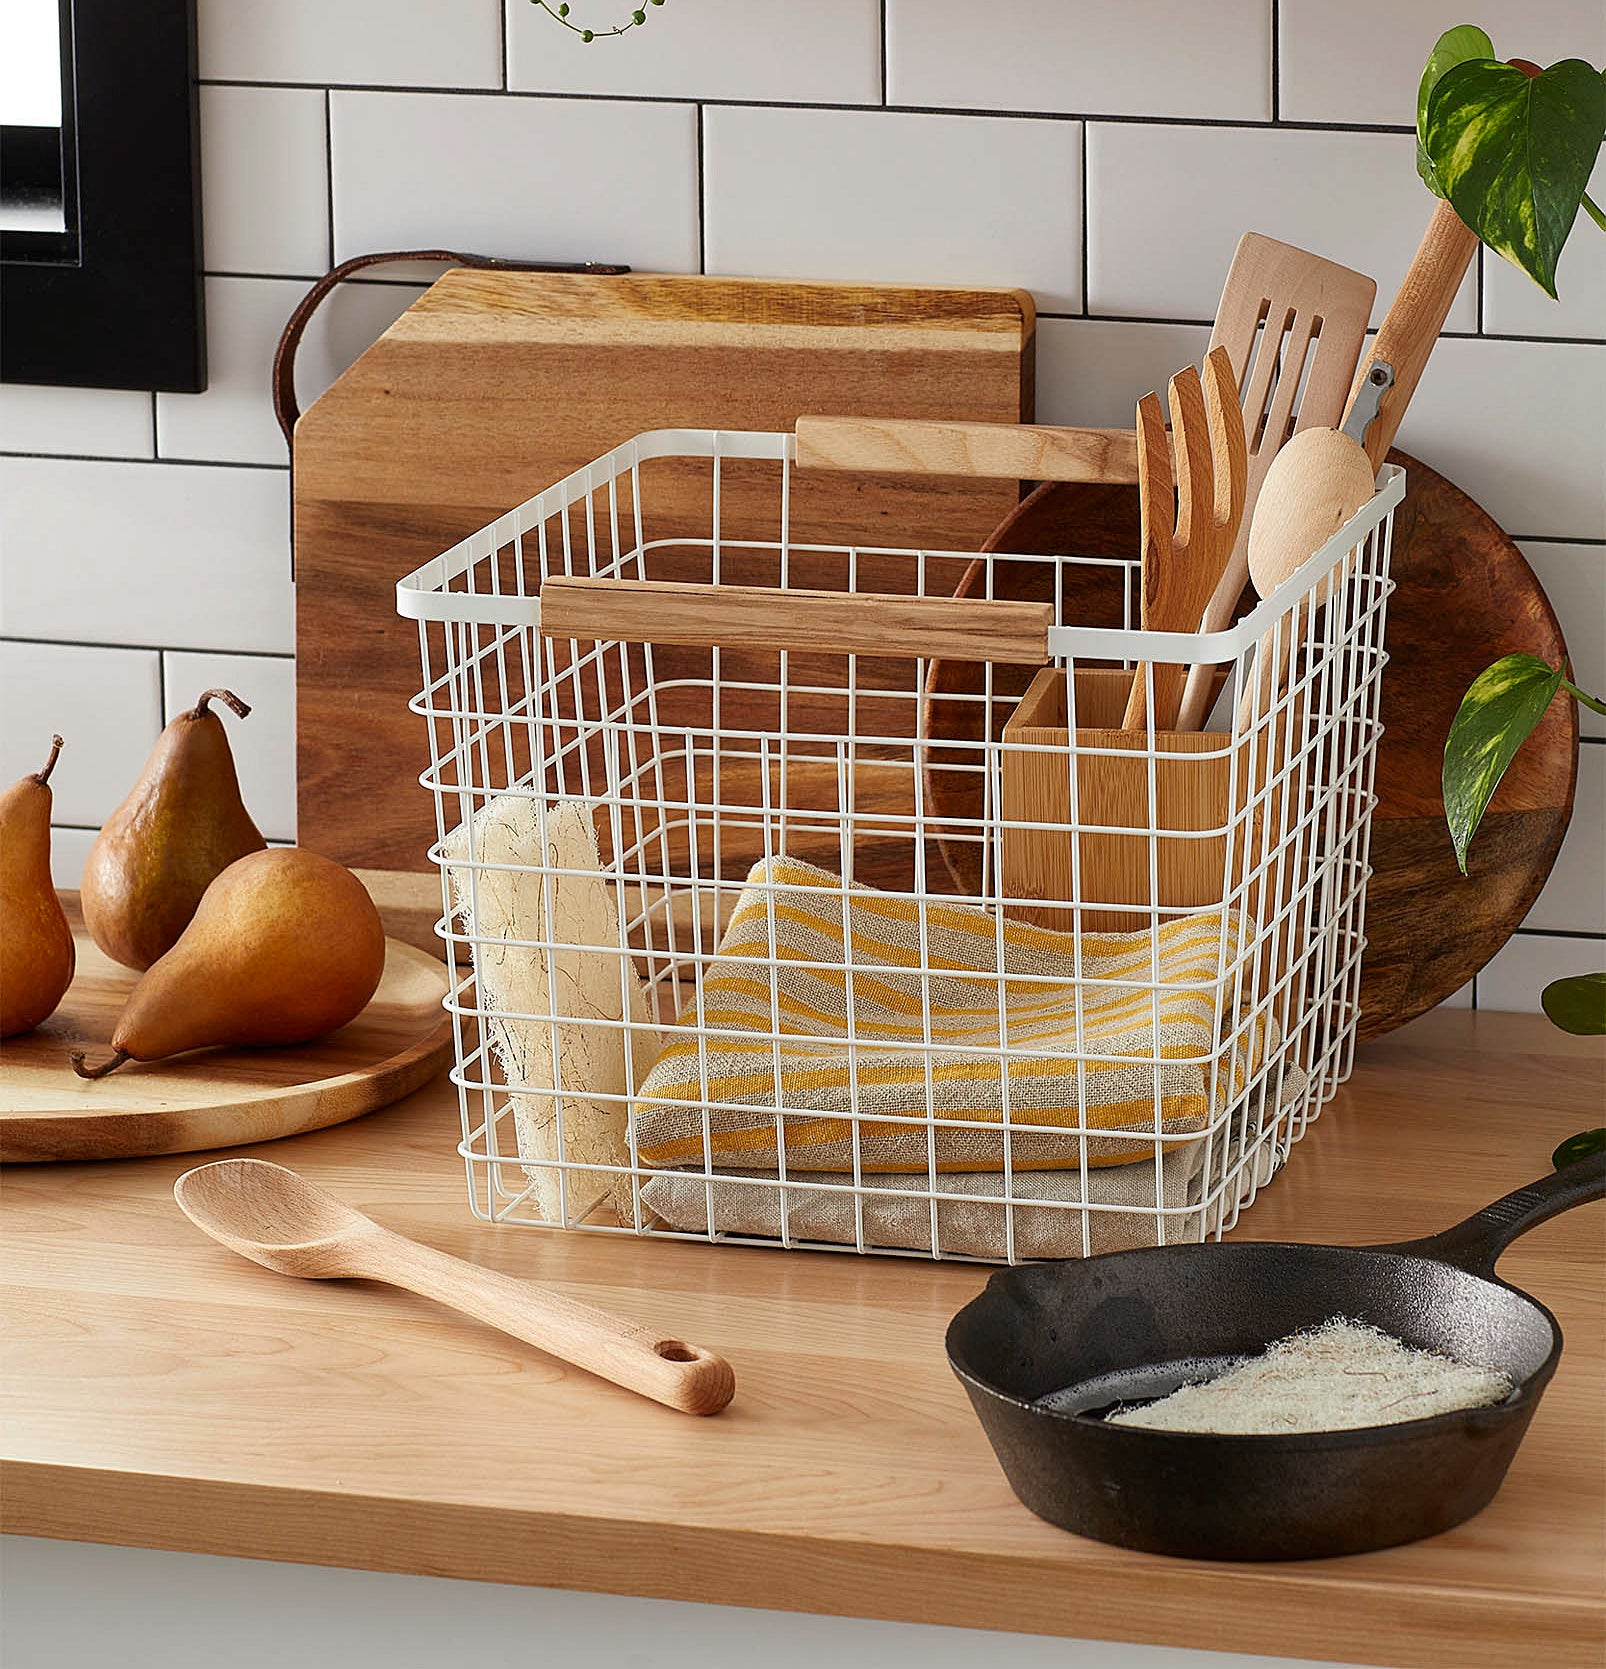 A wire basket on a countertop with dish cloths inside